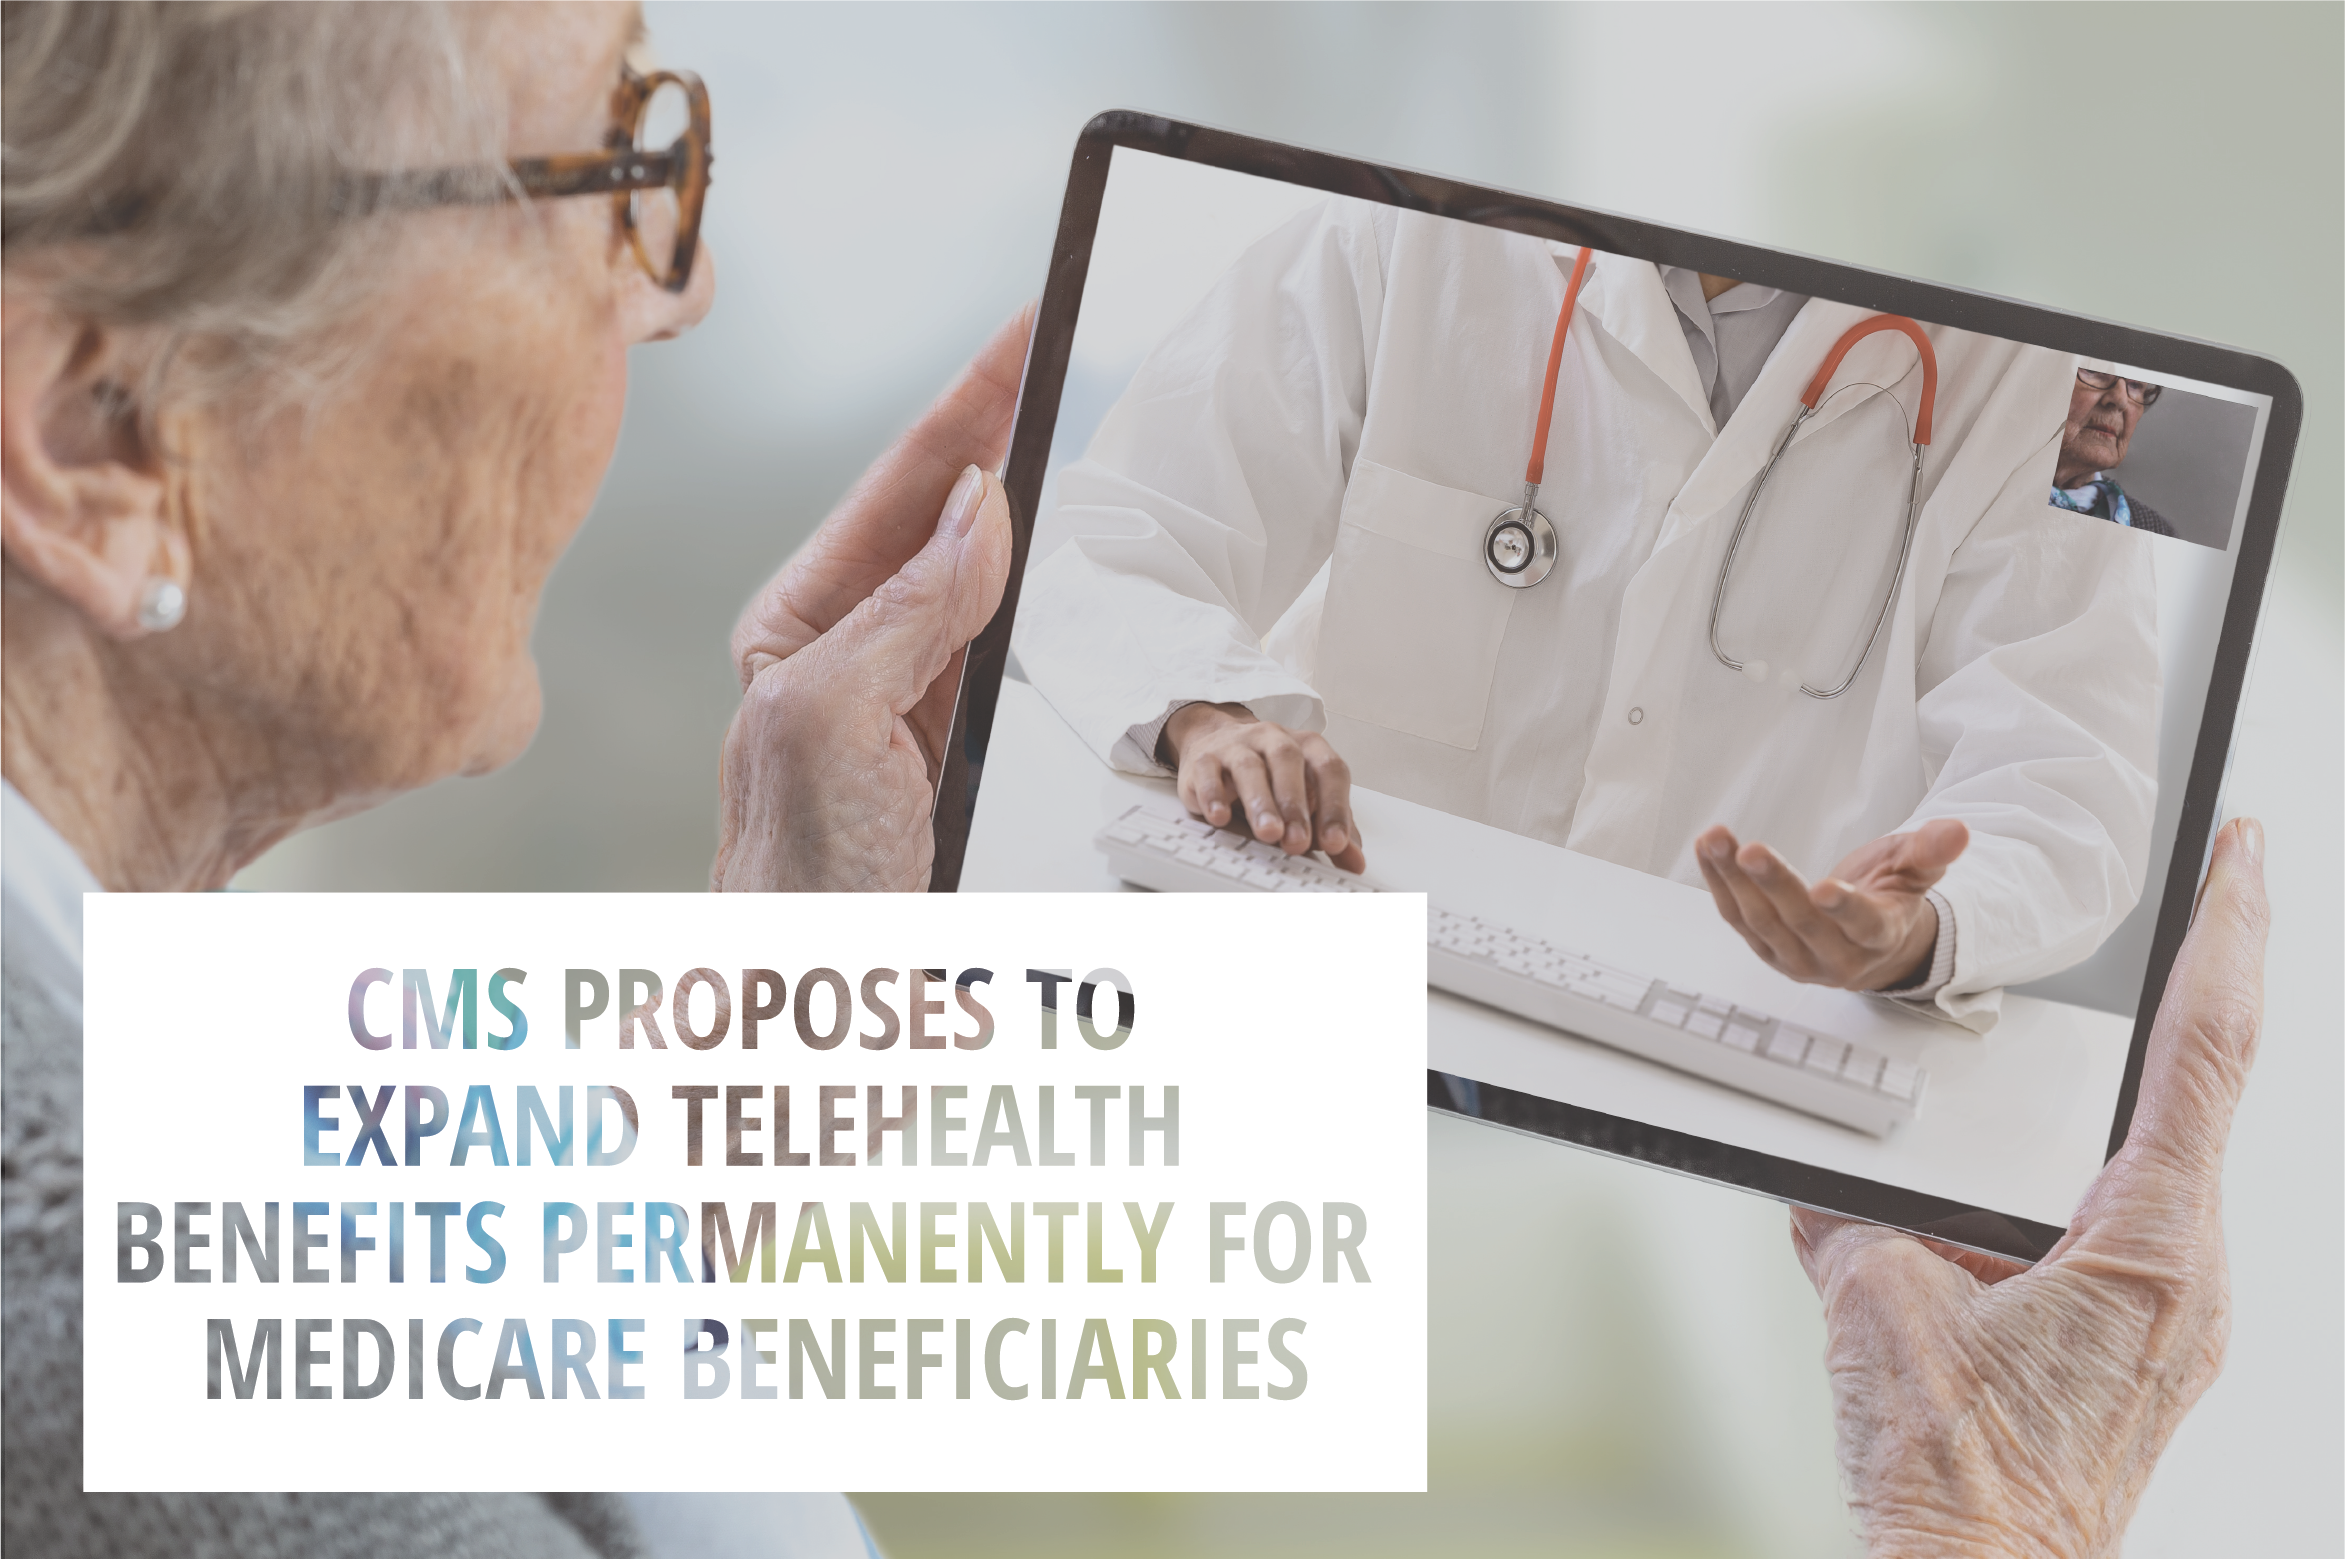 CMS Proposes to Expand Telehealth Benefits Permanently for Medicare Beneficiaries